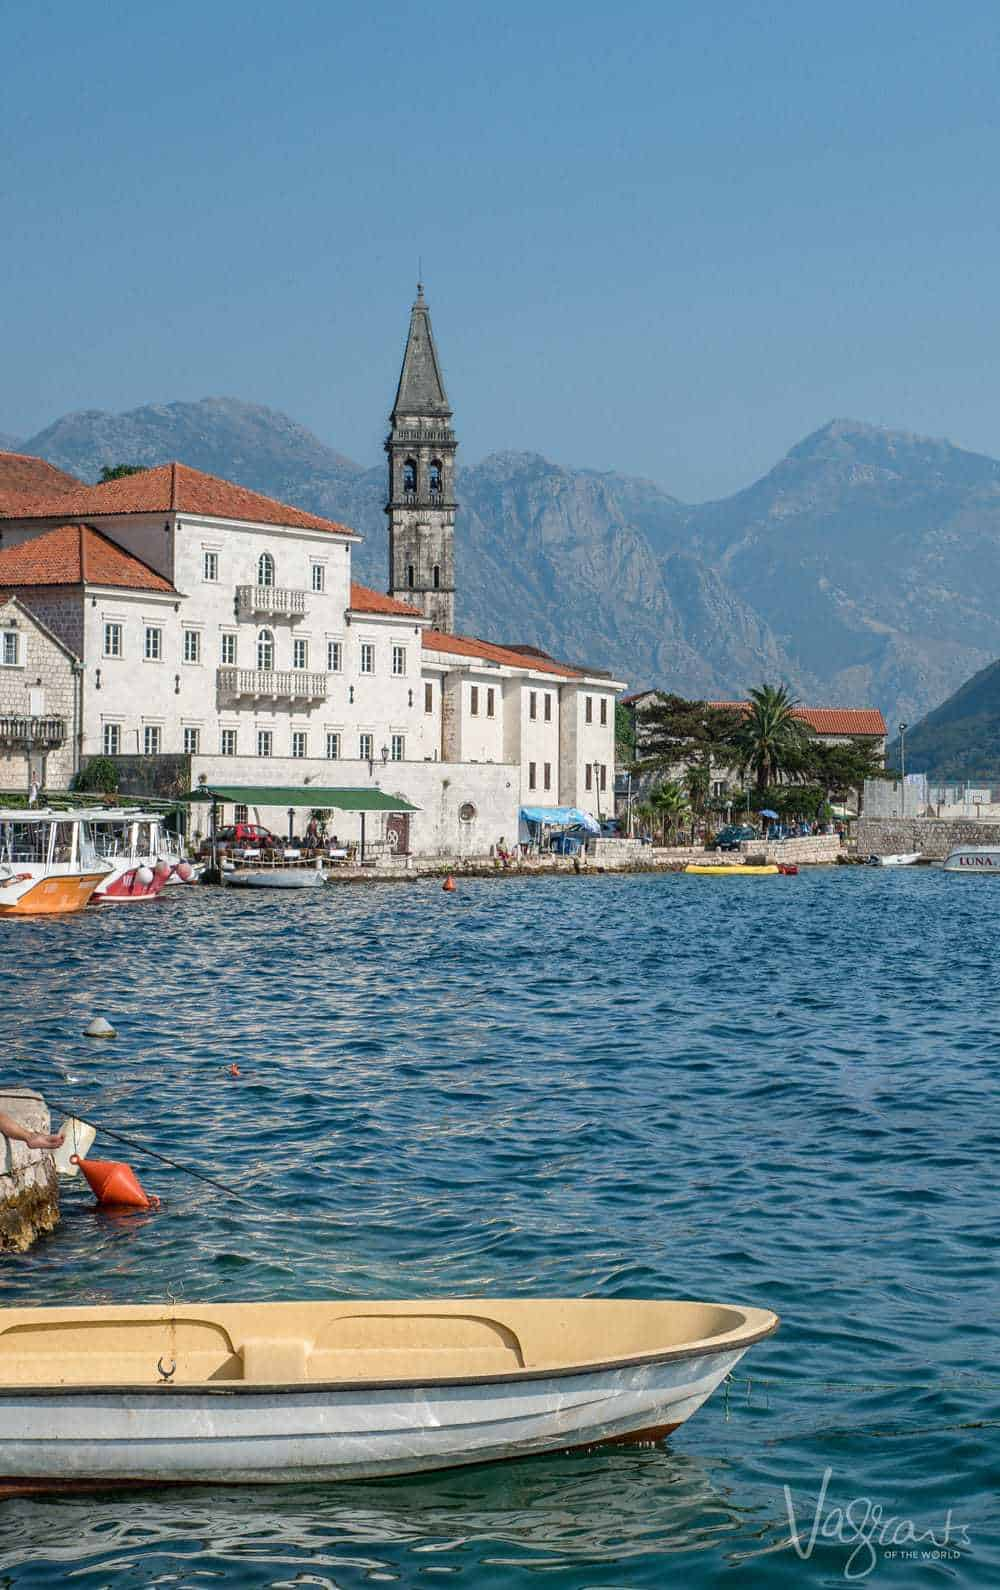 The town of Perast on the bay of Kotor Montenegro.